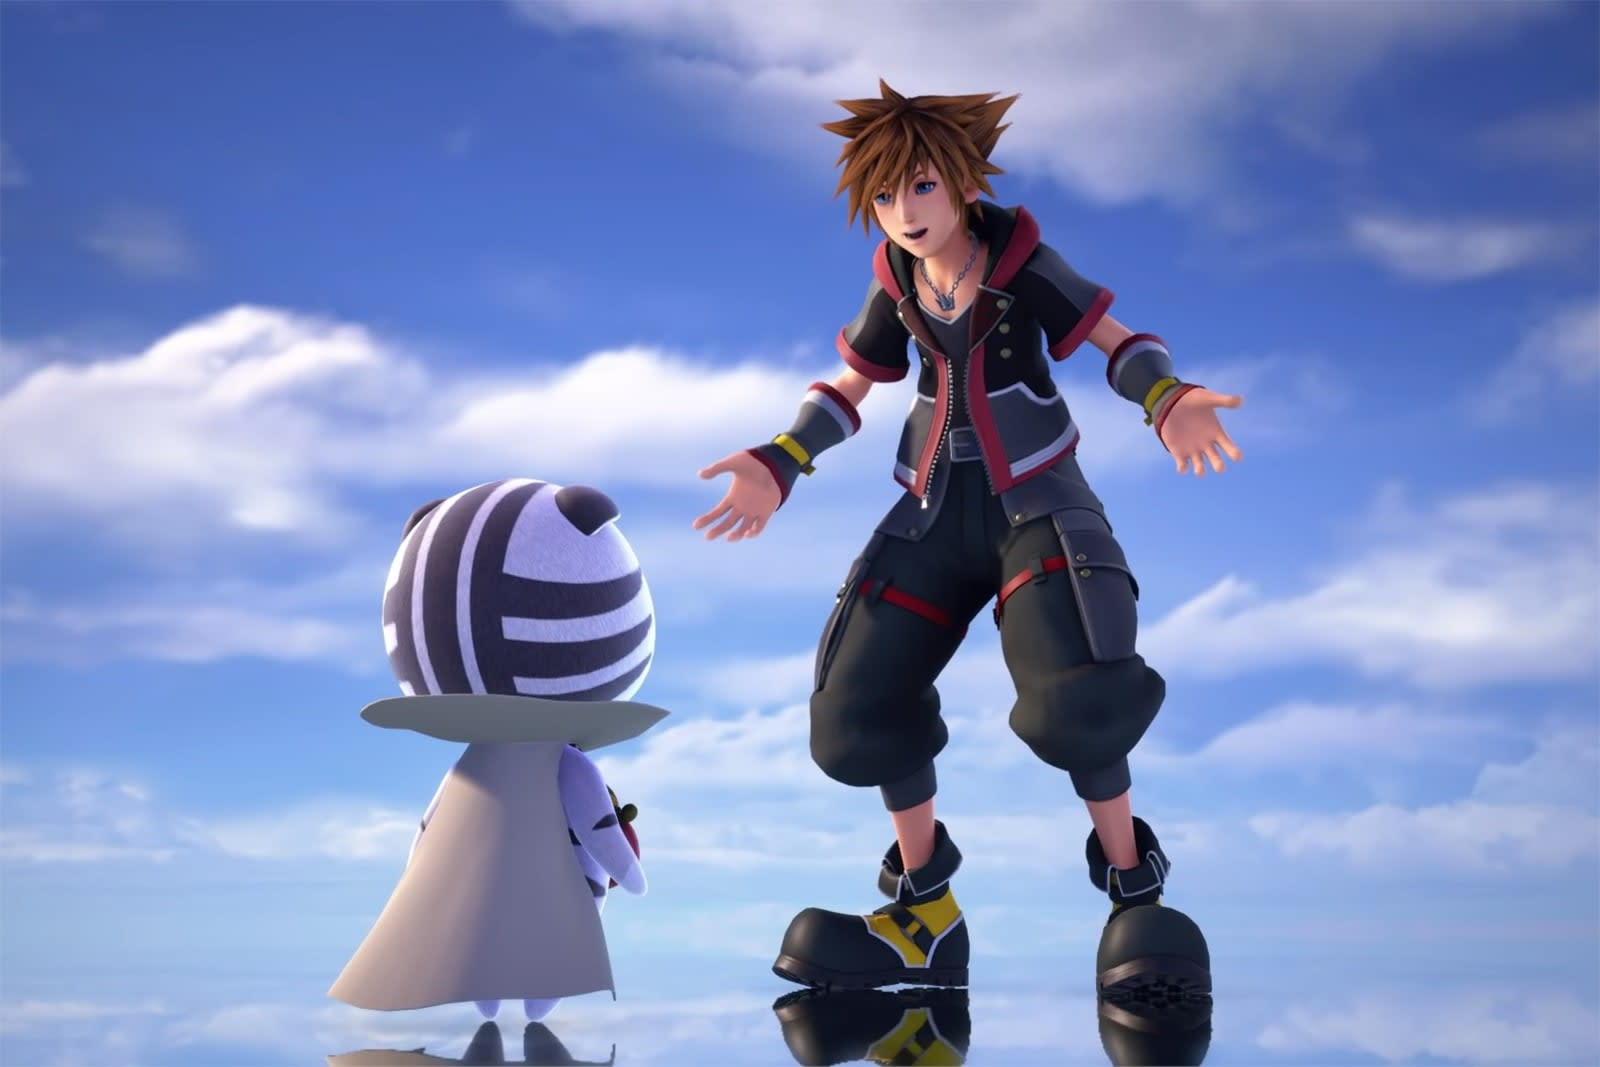 'Kingdom Hearts 3' continues with 'Re Mind' DLC this winter